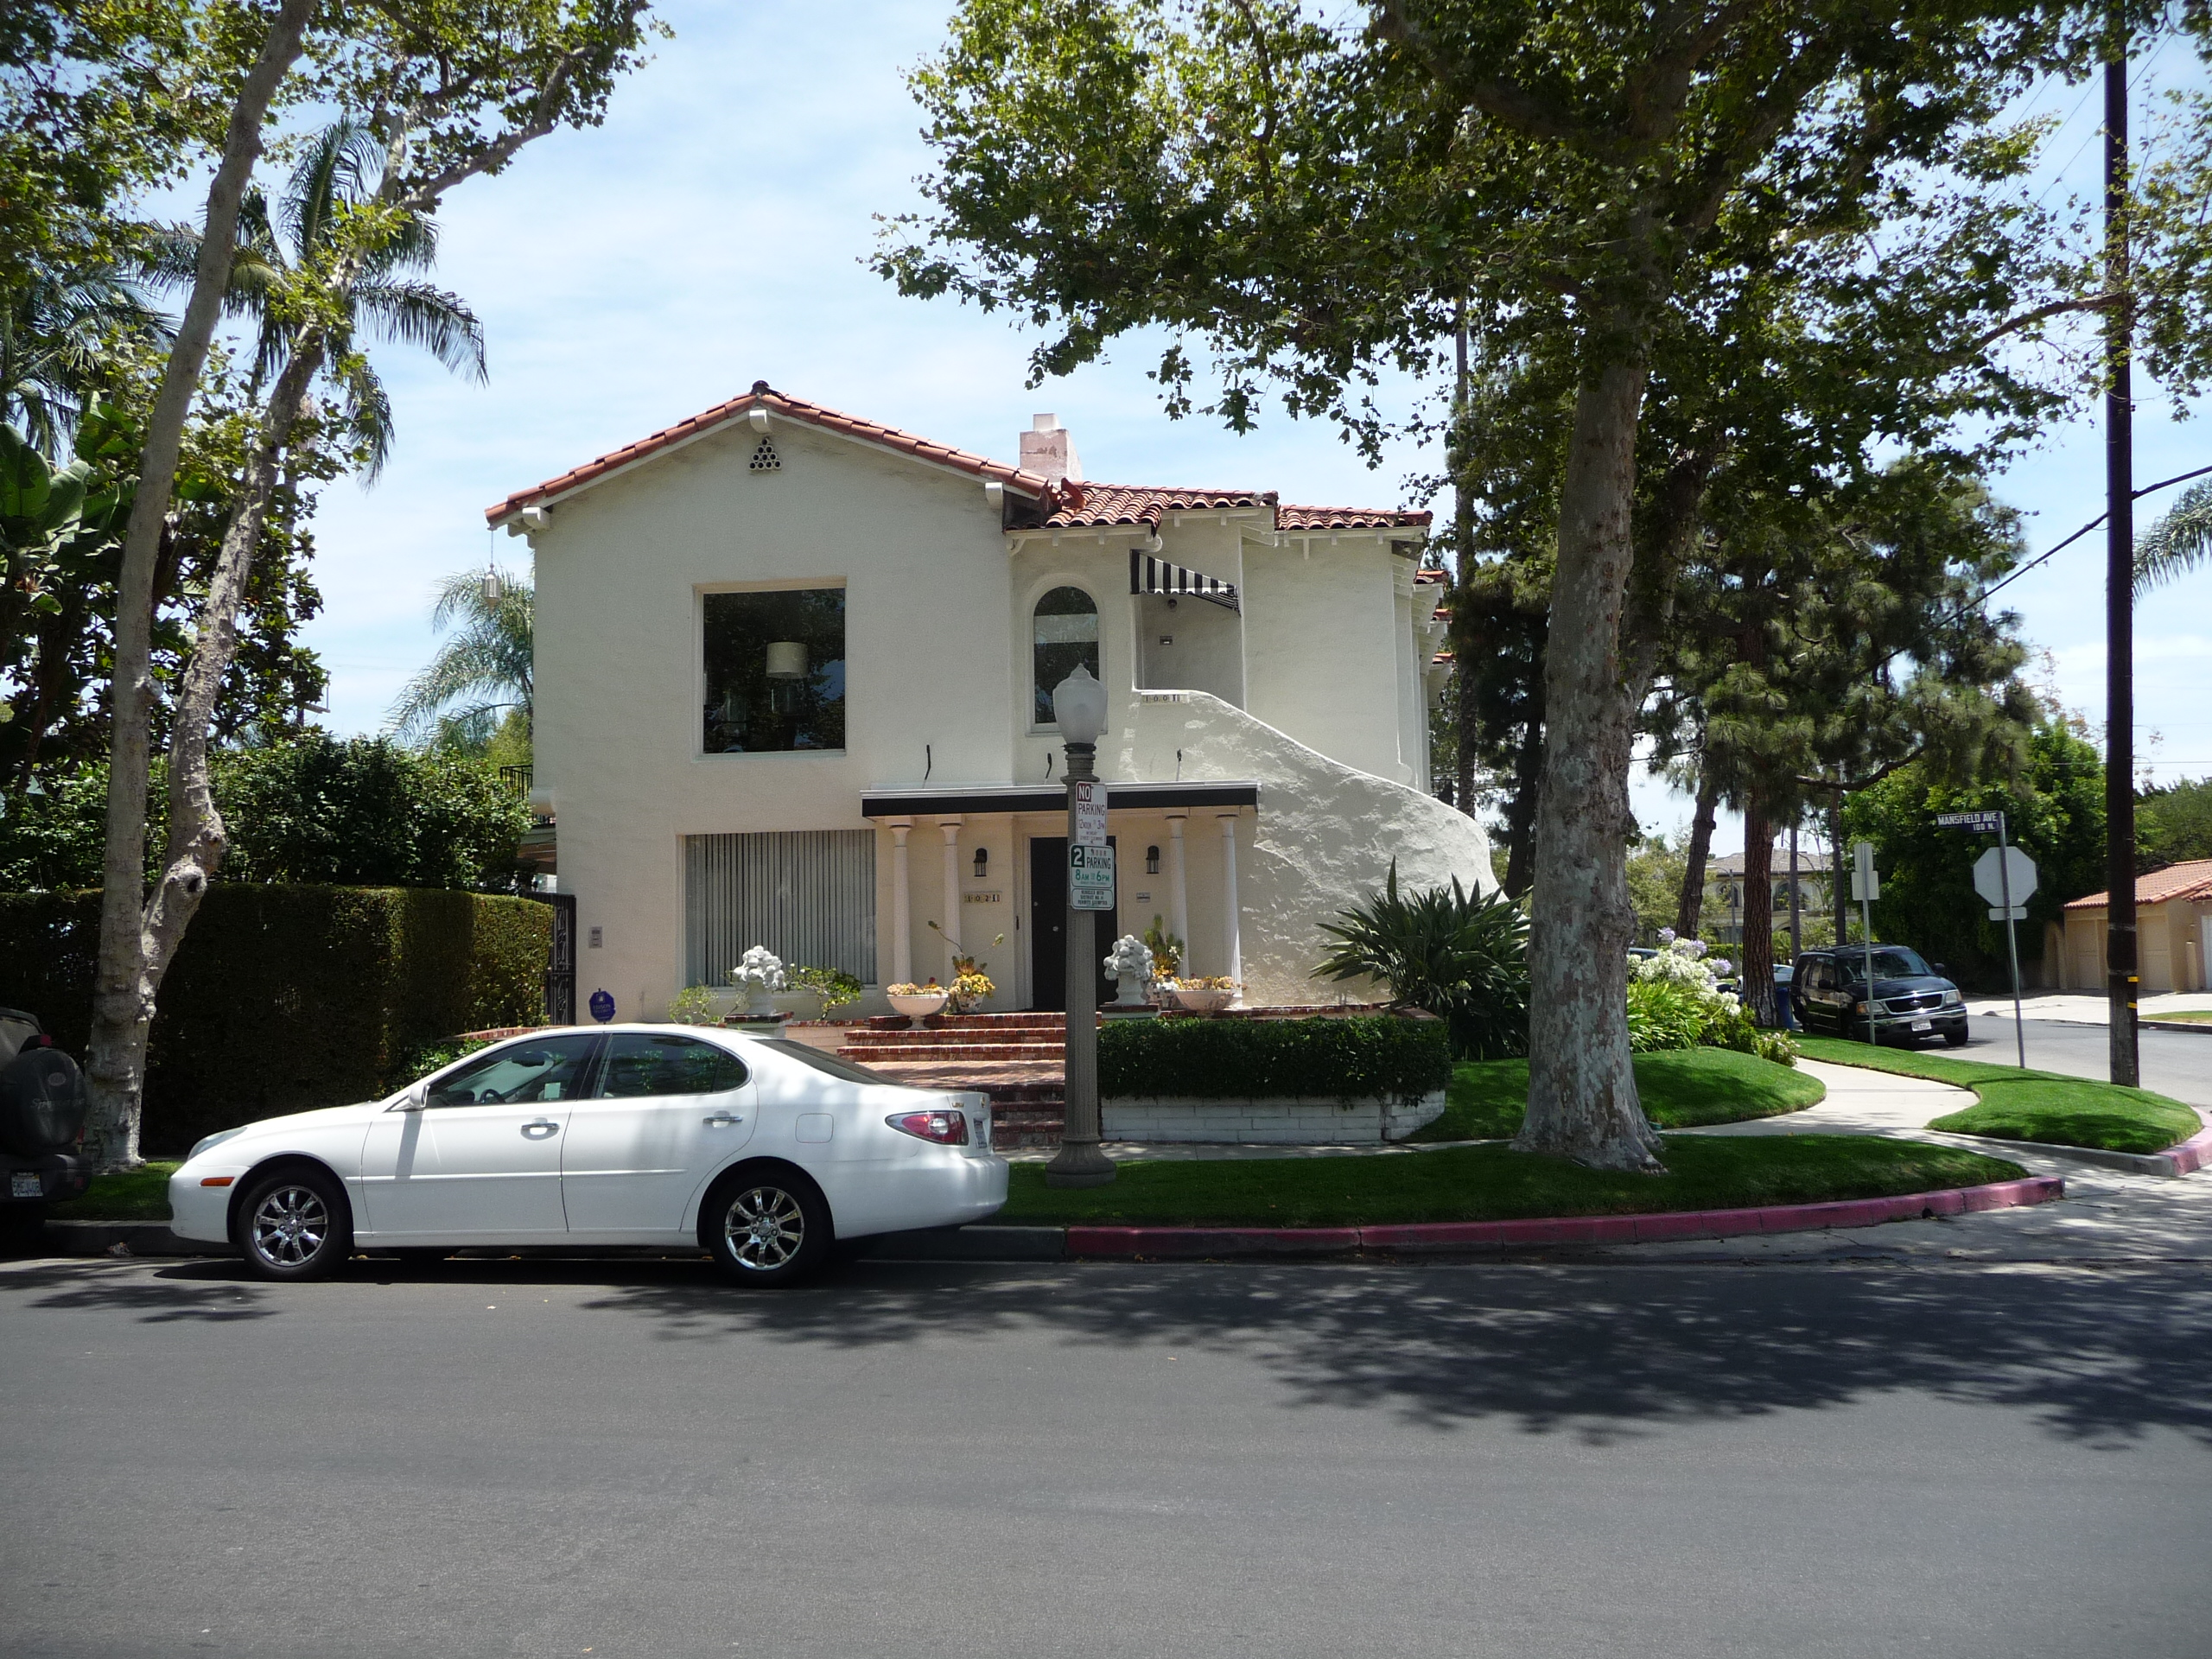 102 N MANSFIELD AVE - PHOTO